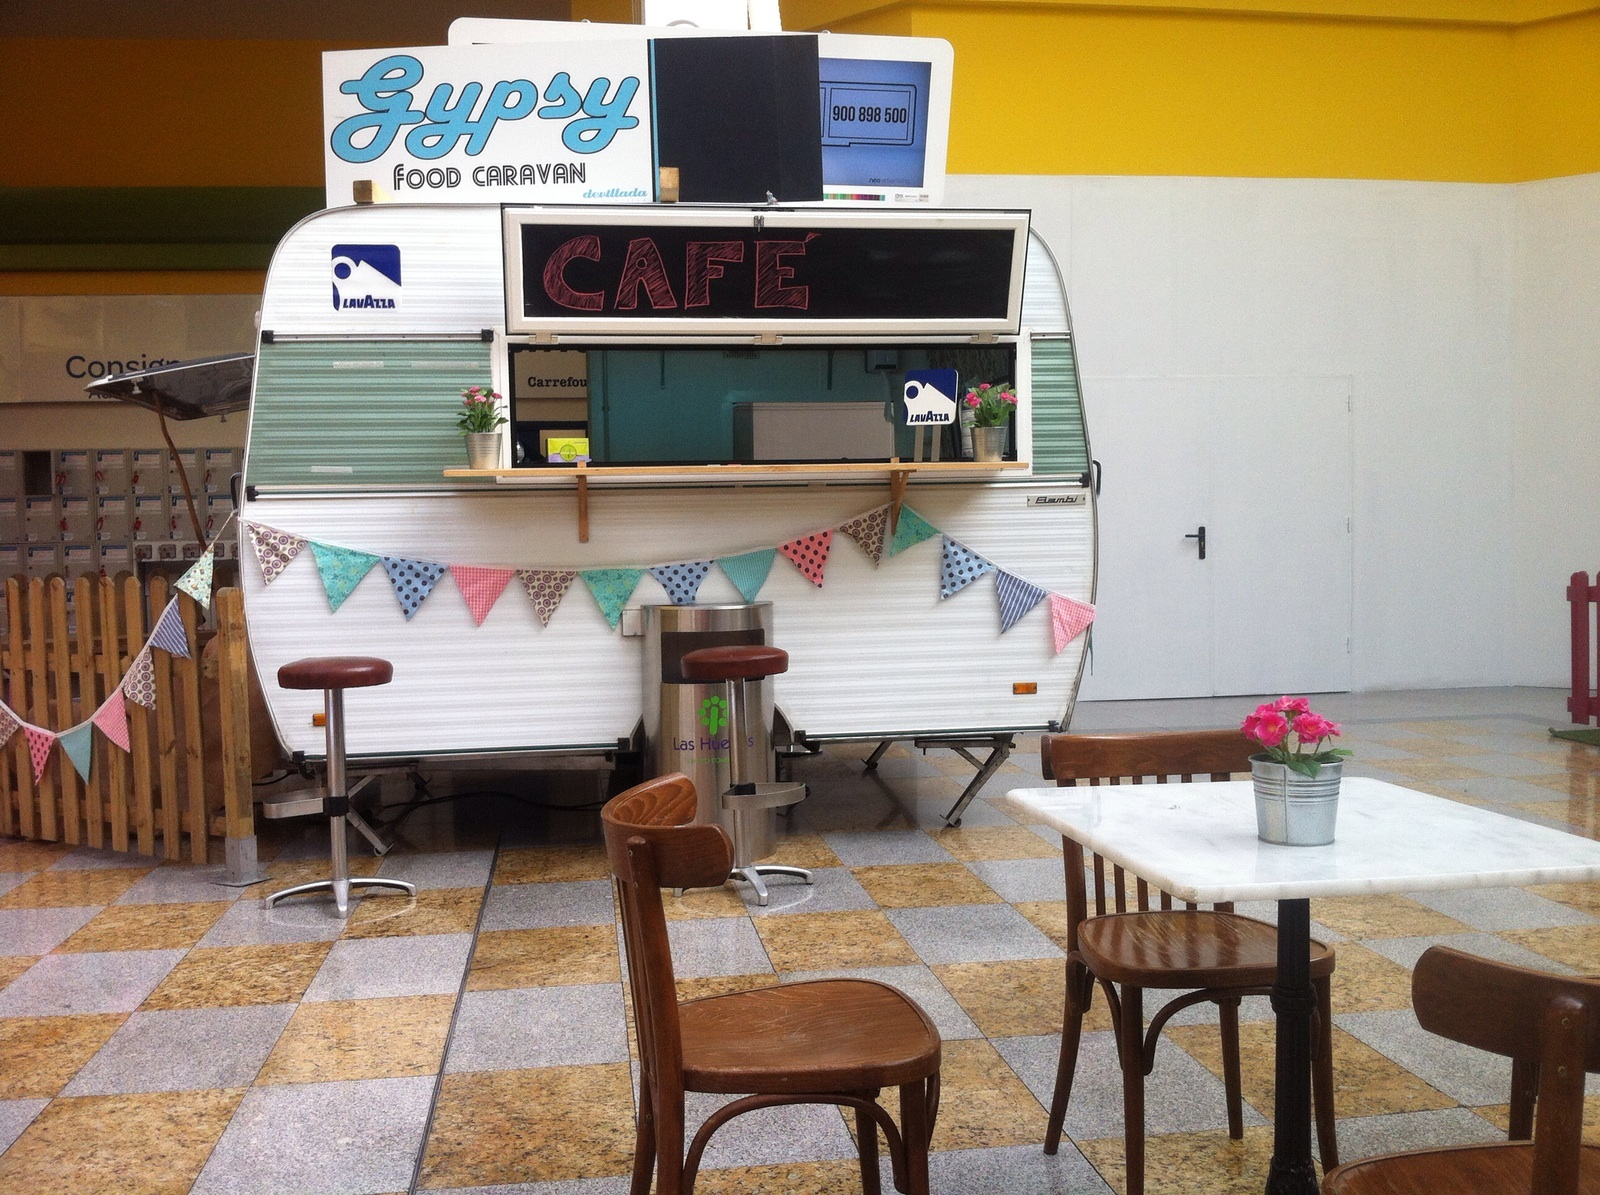 Gypsy Food Caravan en Carrefour